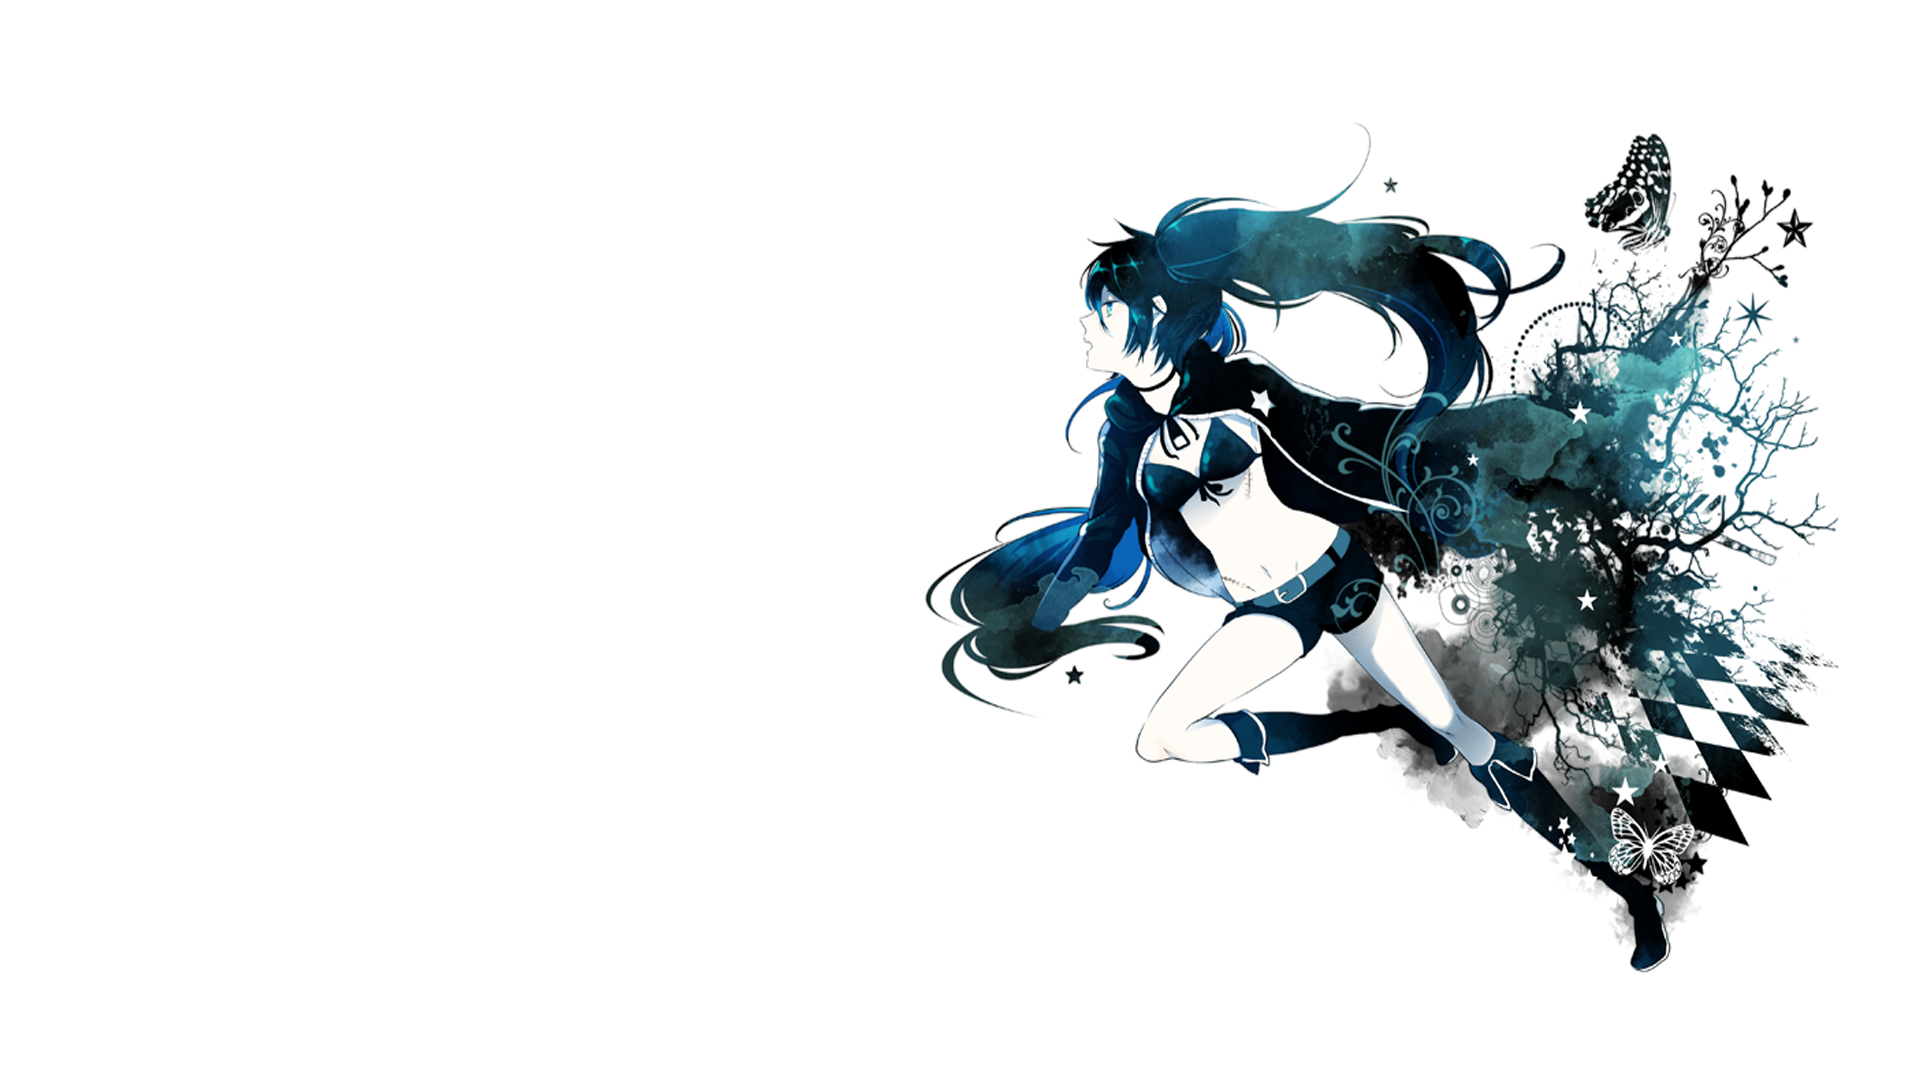 black rock Shooter simple HD Wallpaper